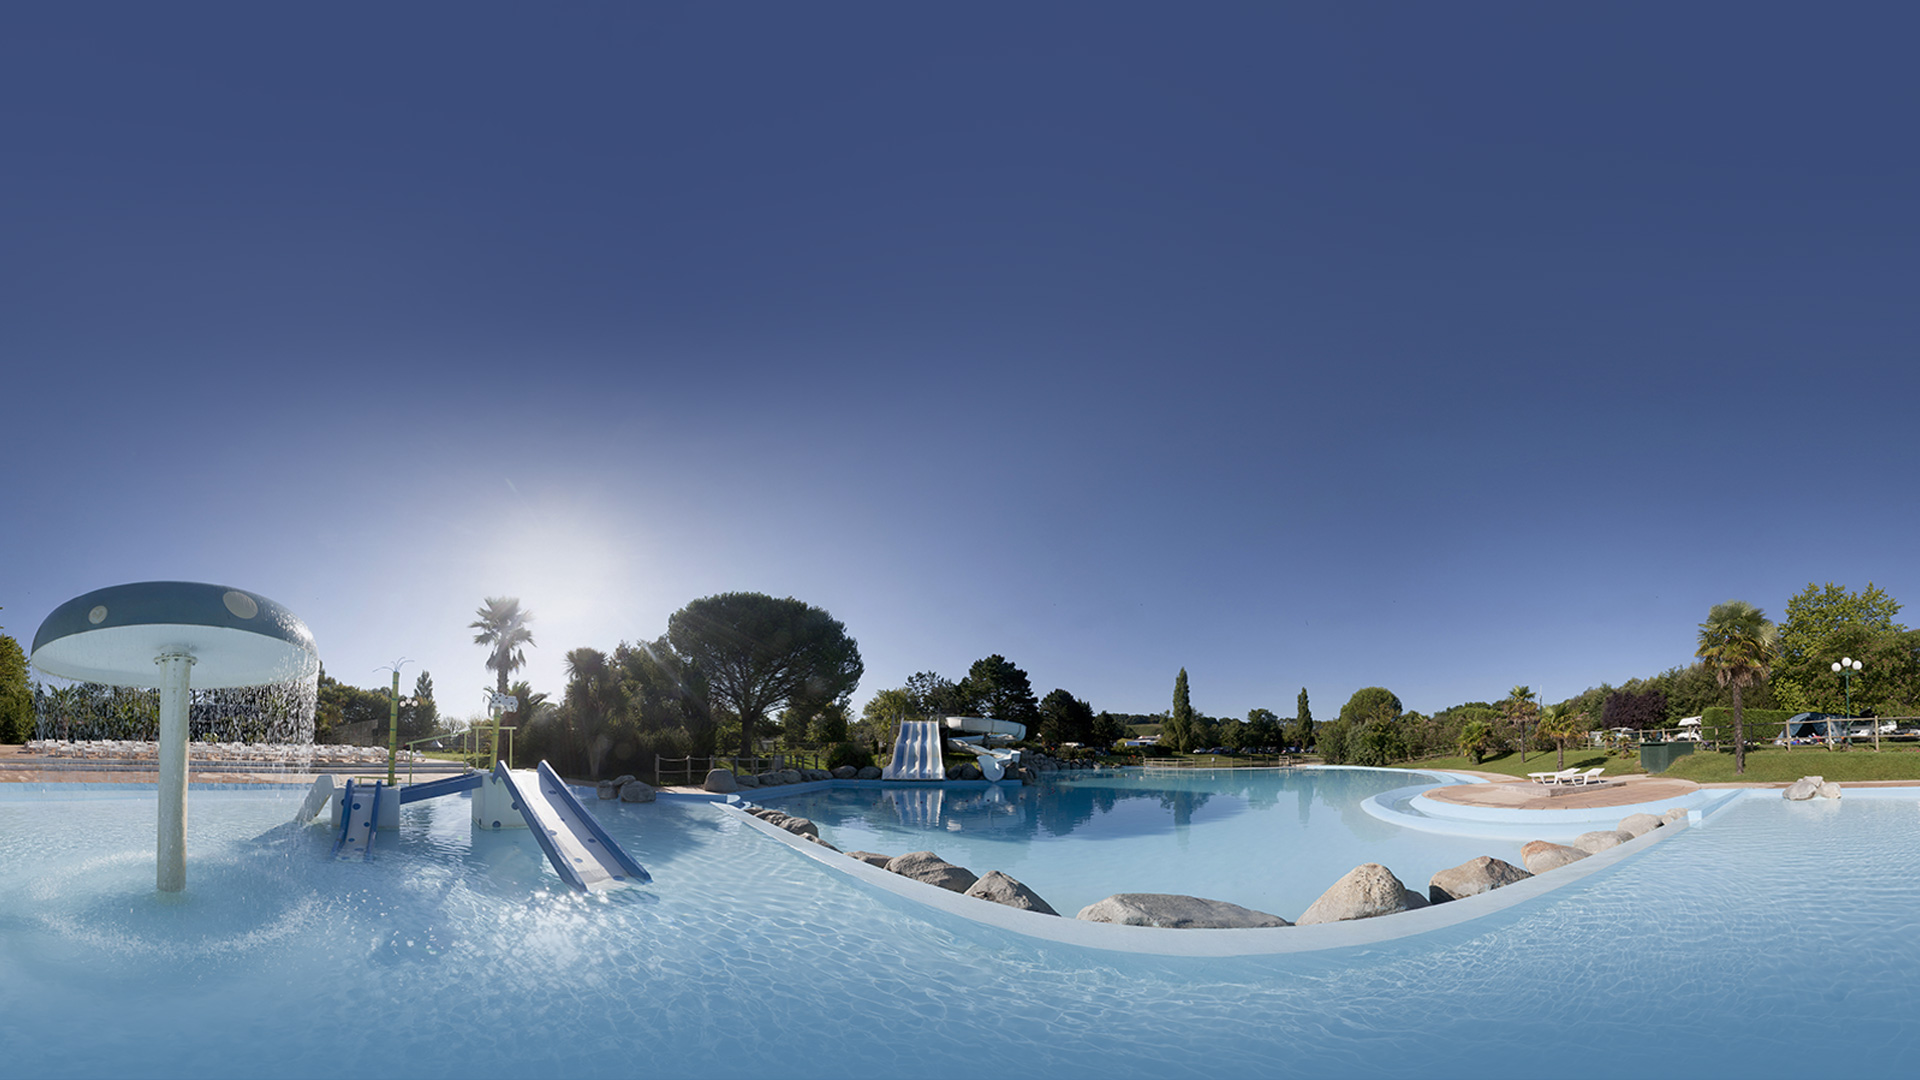 Camping biarritz pays basque le ruisseau 5 toiles for Camping a biarritz avec piscine